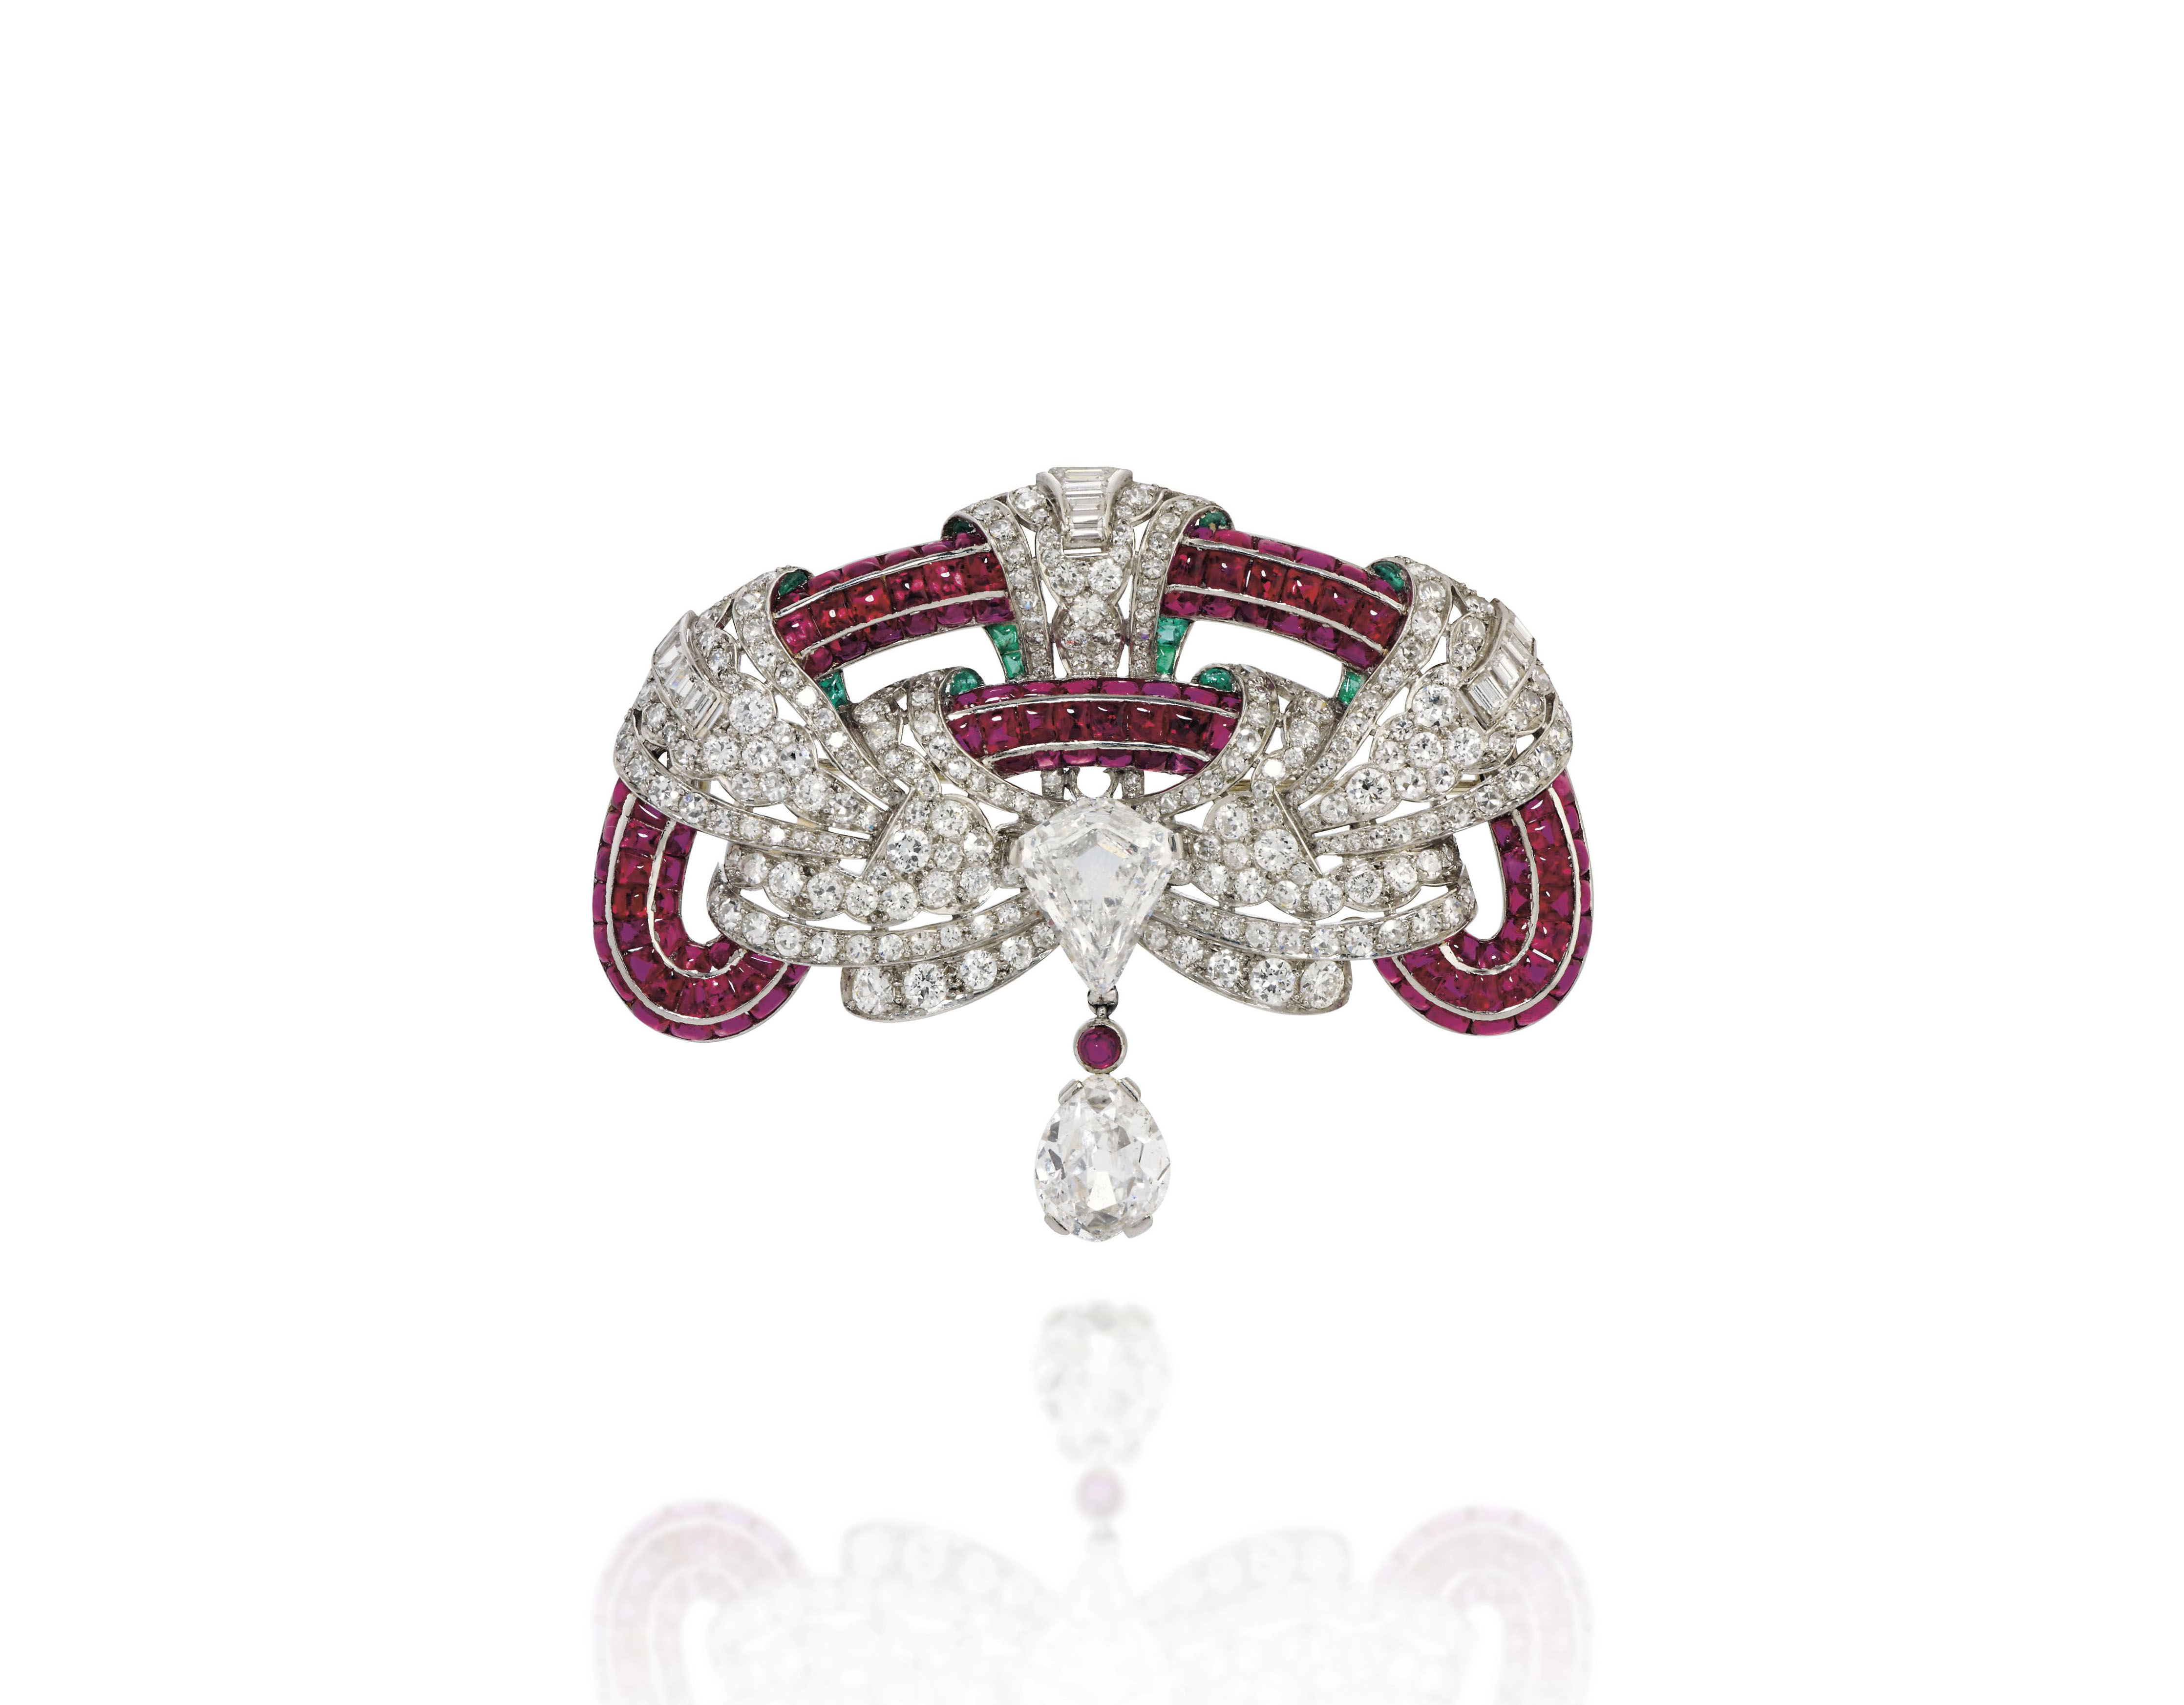 AN ART DECO RUBY, EMERALD AND DIAMOND BROOCH, BY JANESICH